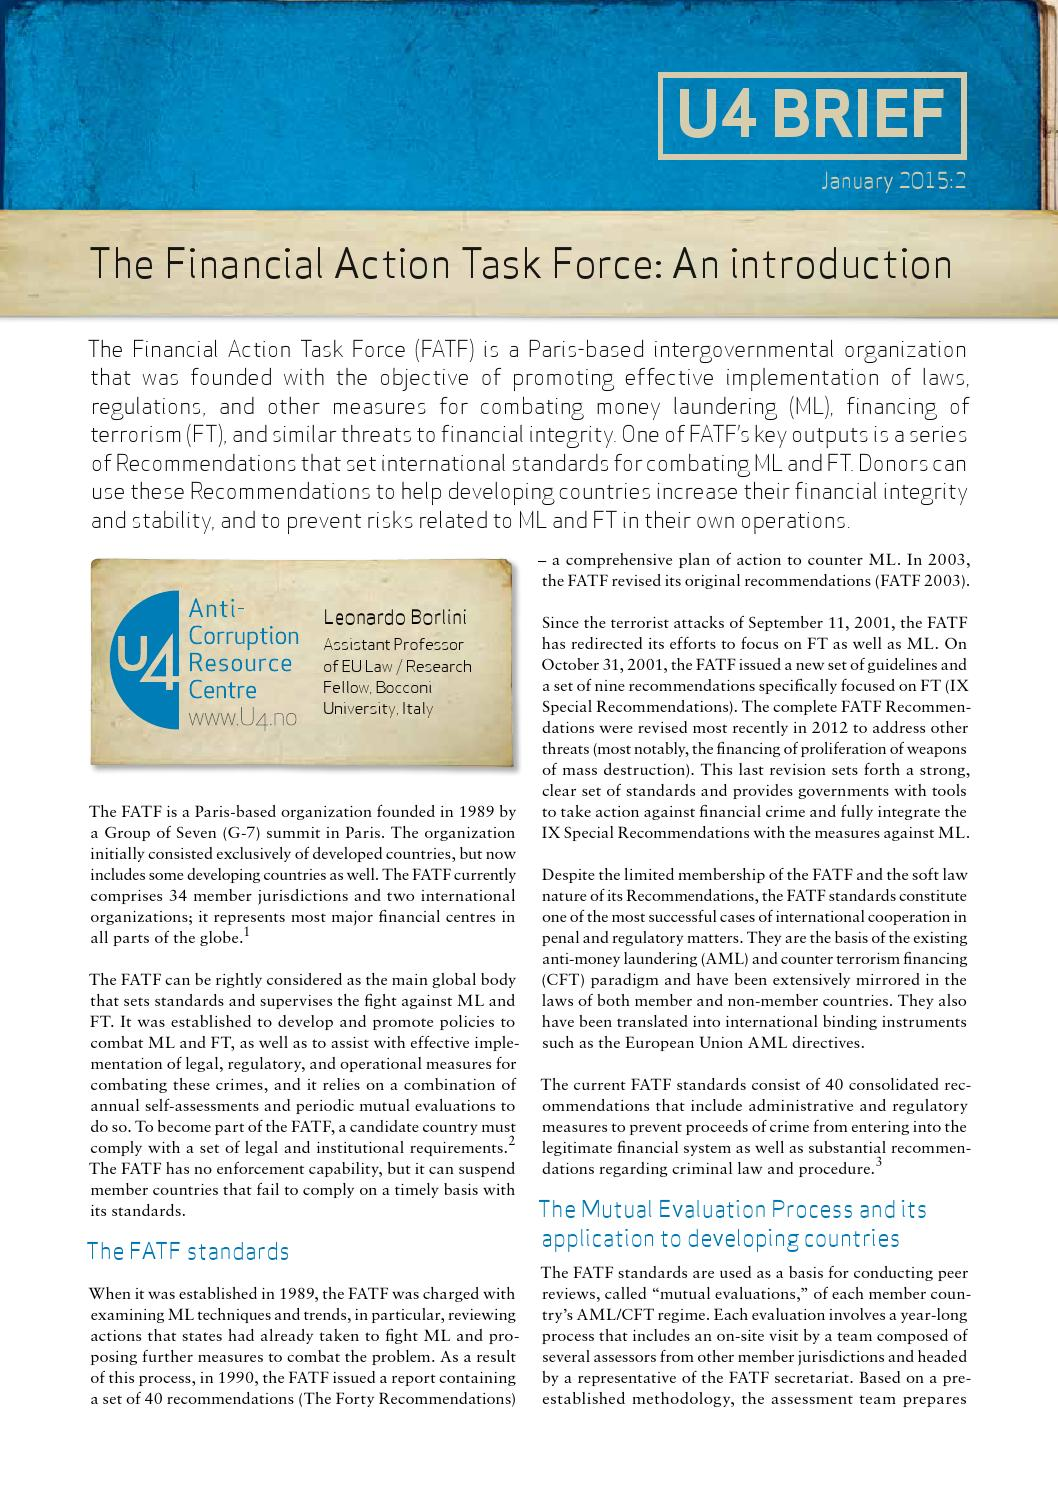 an introduction to the fatf and This article serves to introduce this special issue of crime, law, & social changeon the financial action task force (fatf) it provides a primer on the history and.